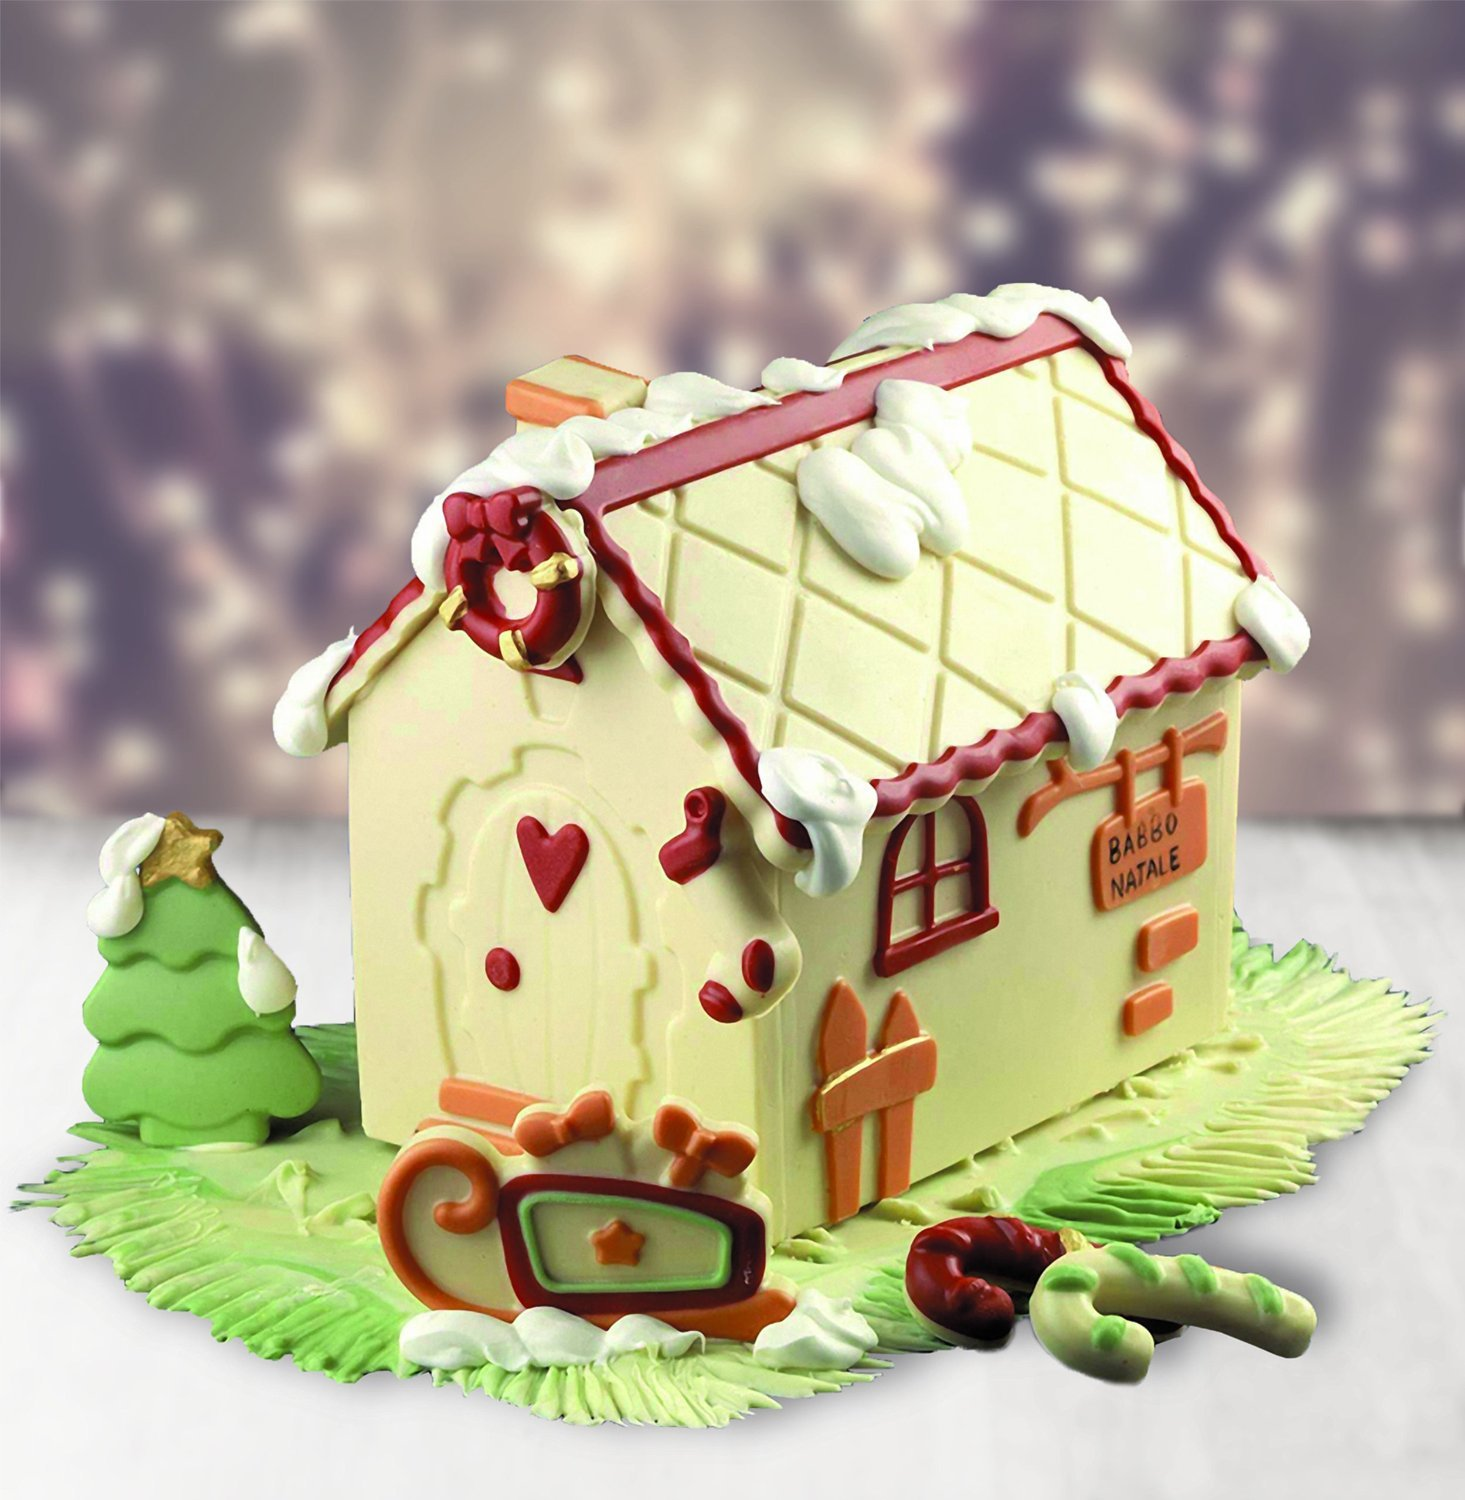 Silikomart Home Sweet Home Gingerbread House Silicone Mold